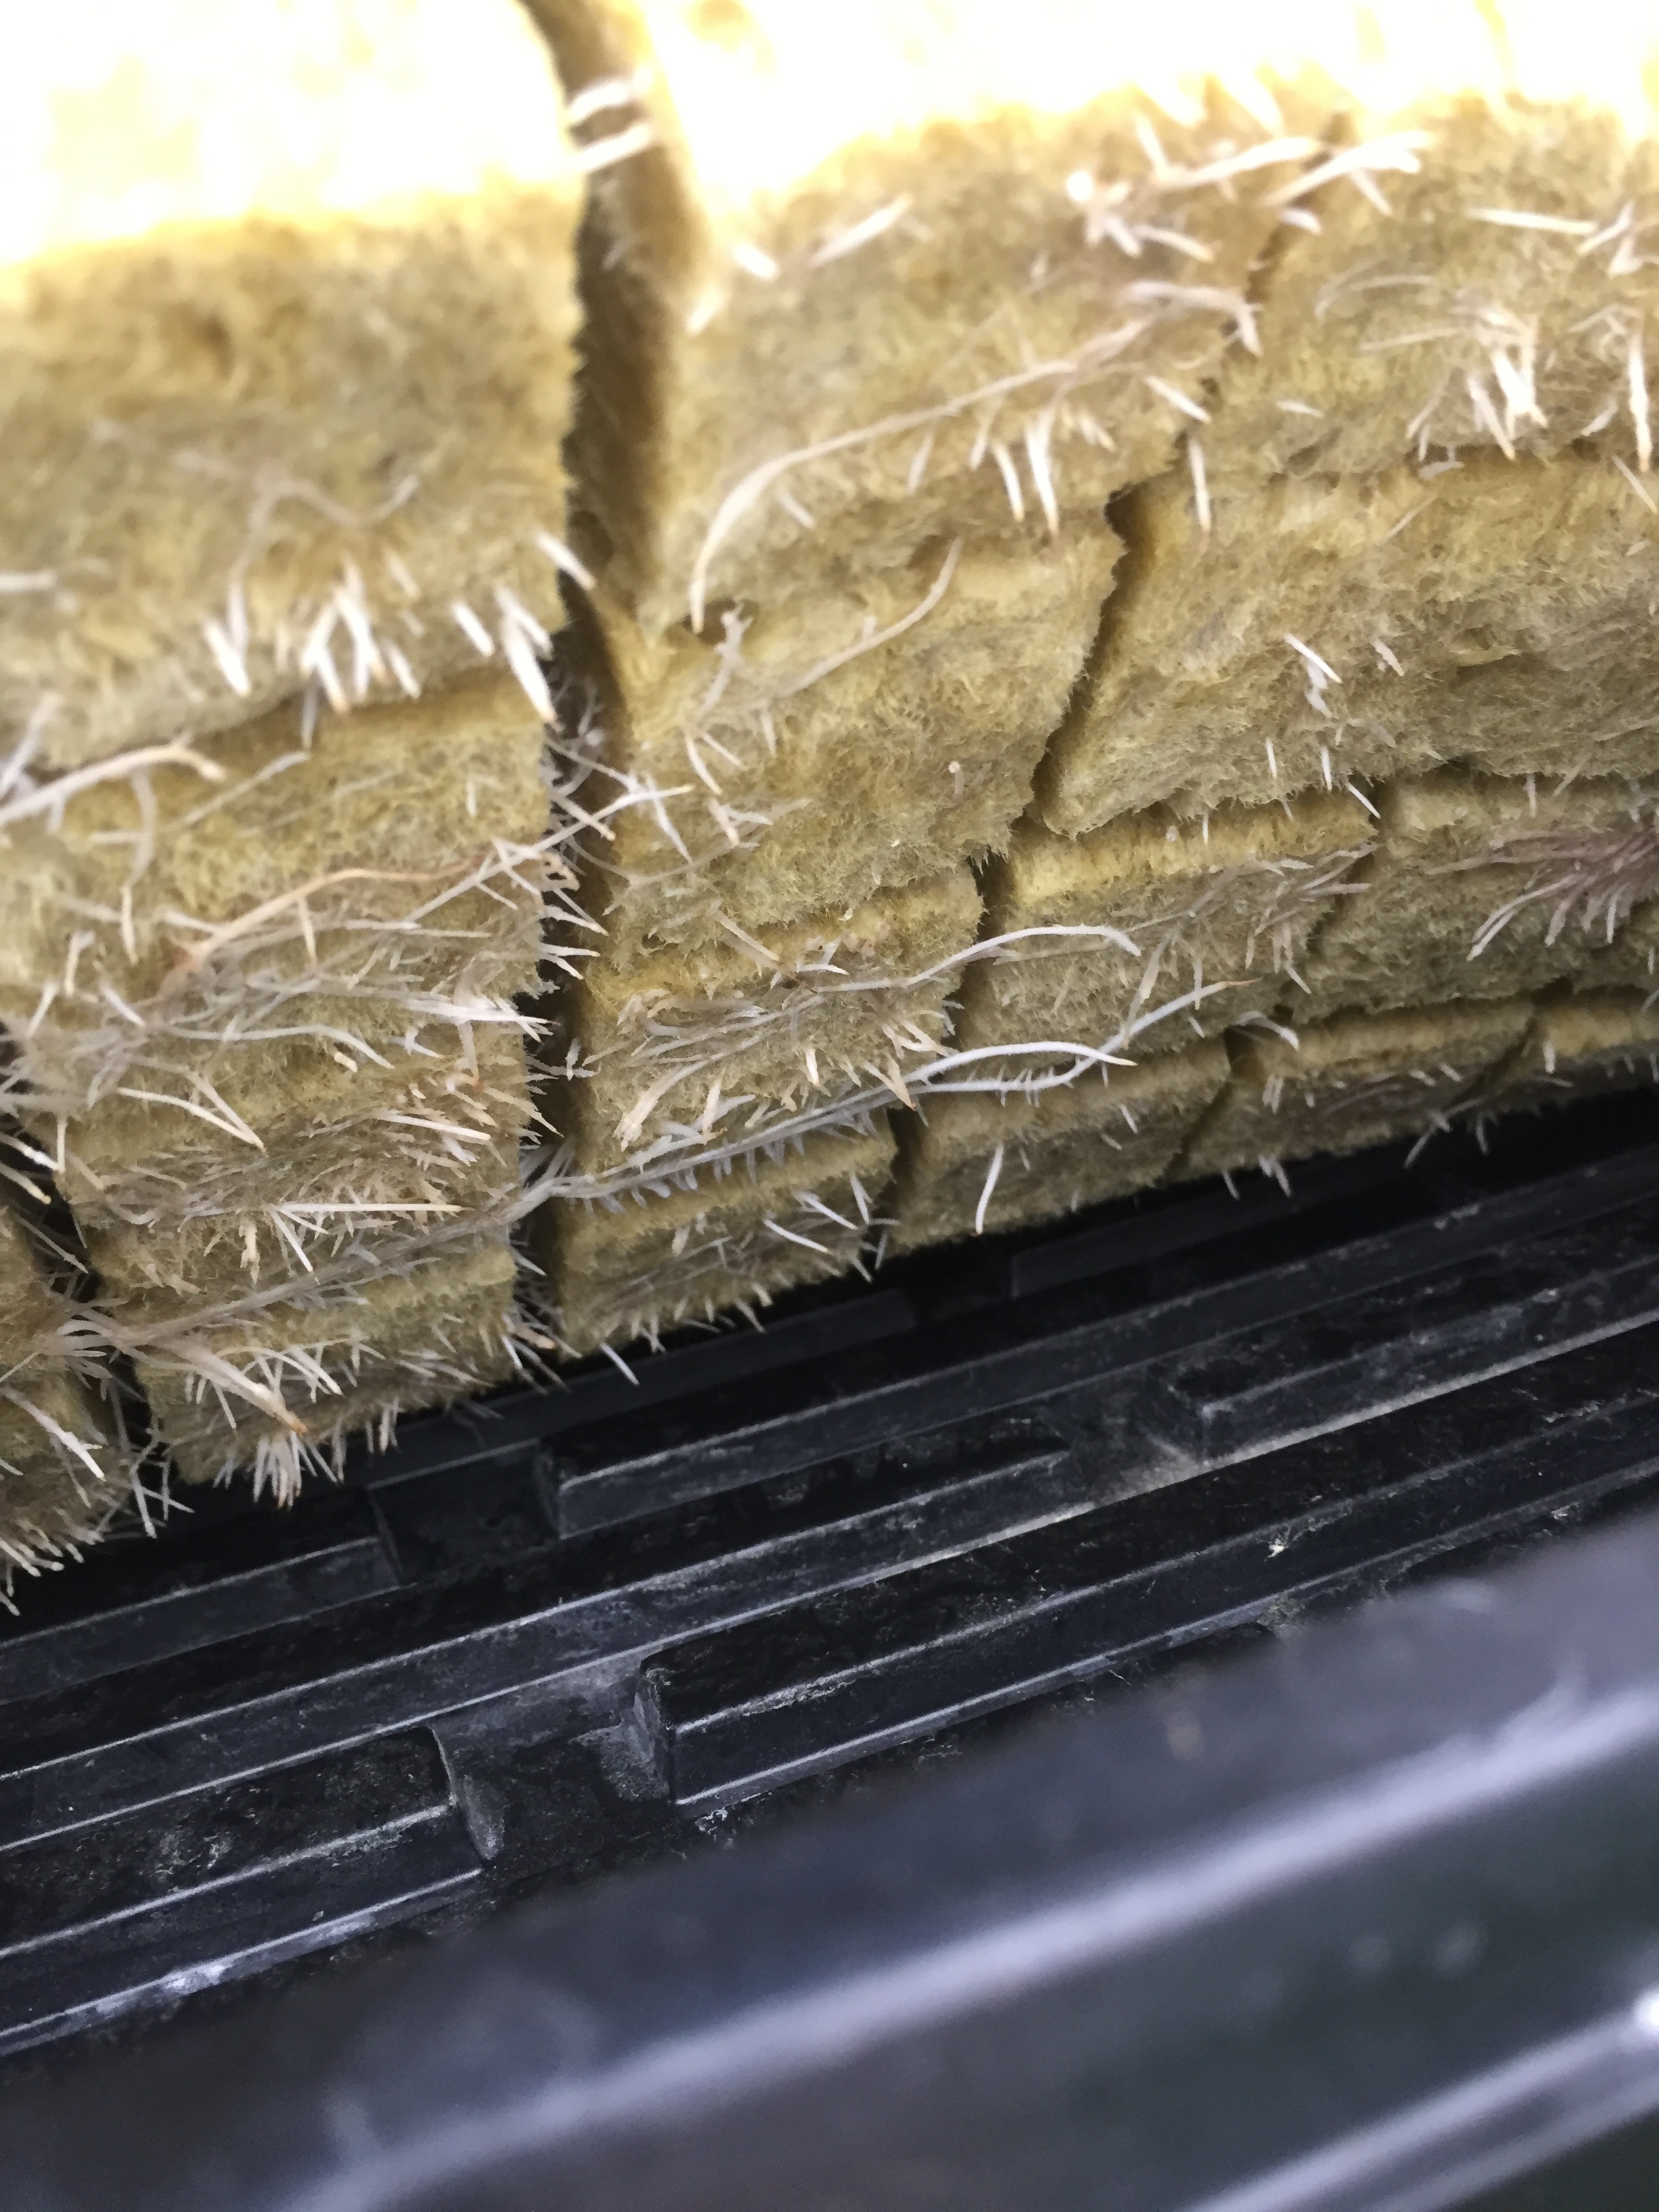 Rookwool cubes with healthy white roots